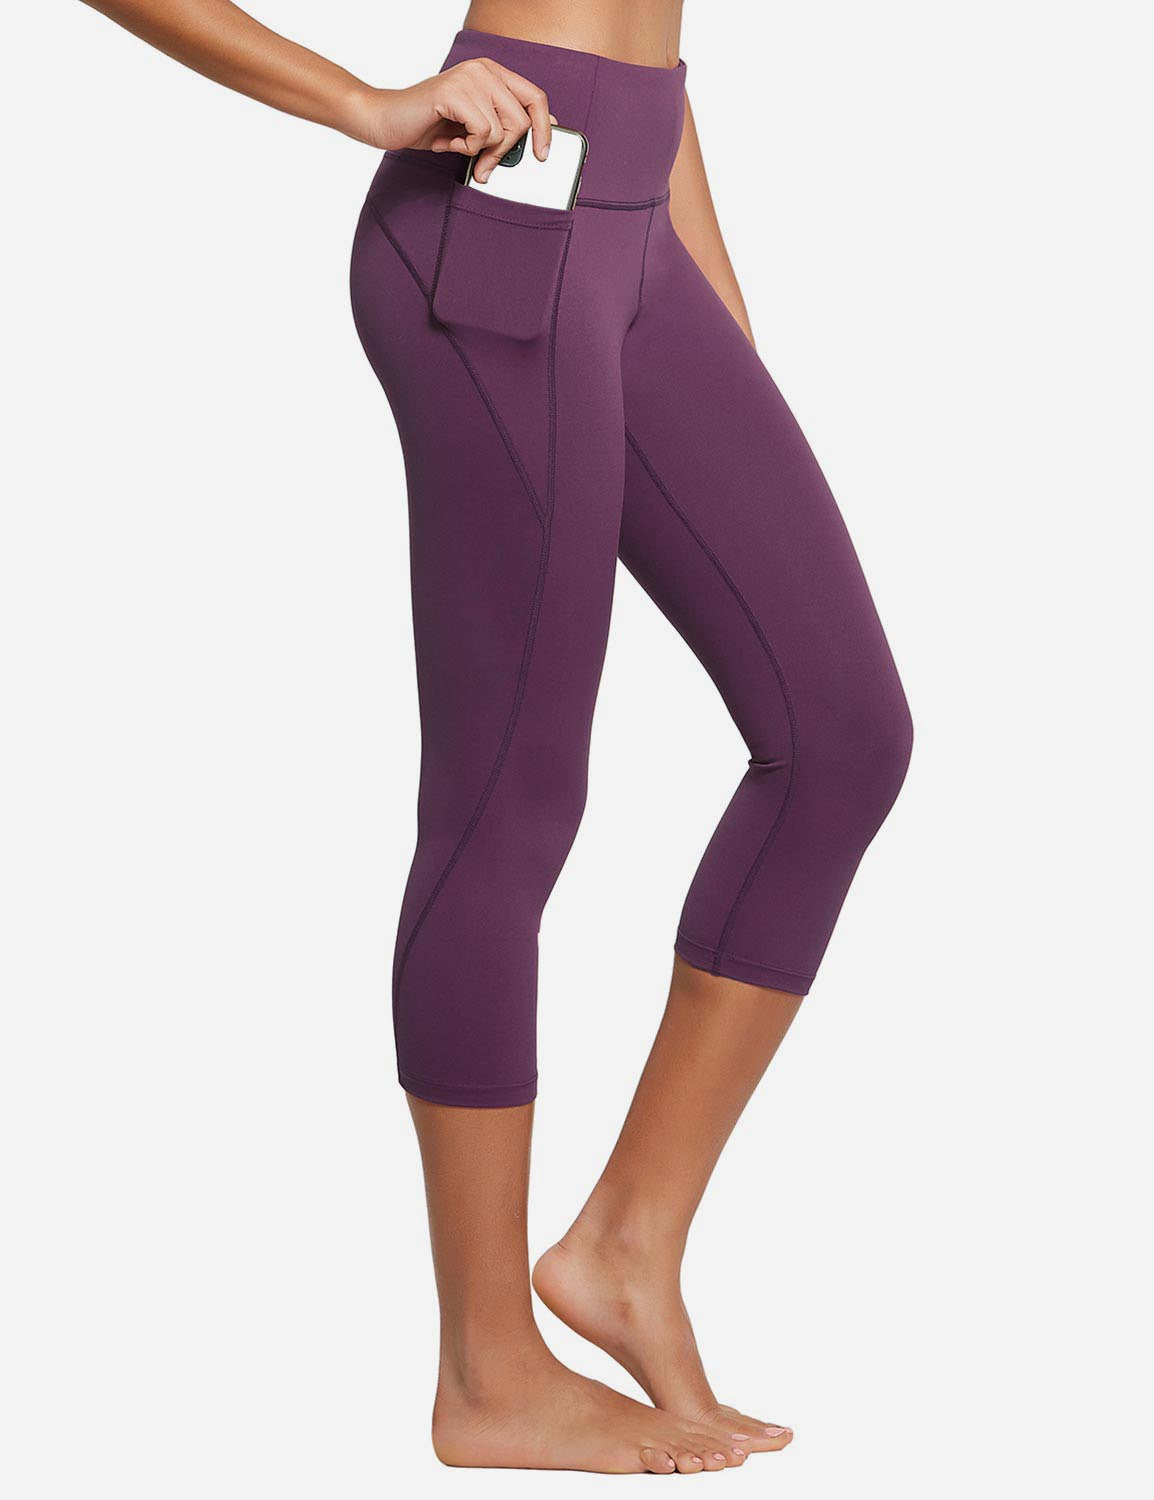 Baleaf Womens High Rise Bottom Contour Pocketed Capris Dark Magenta Side